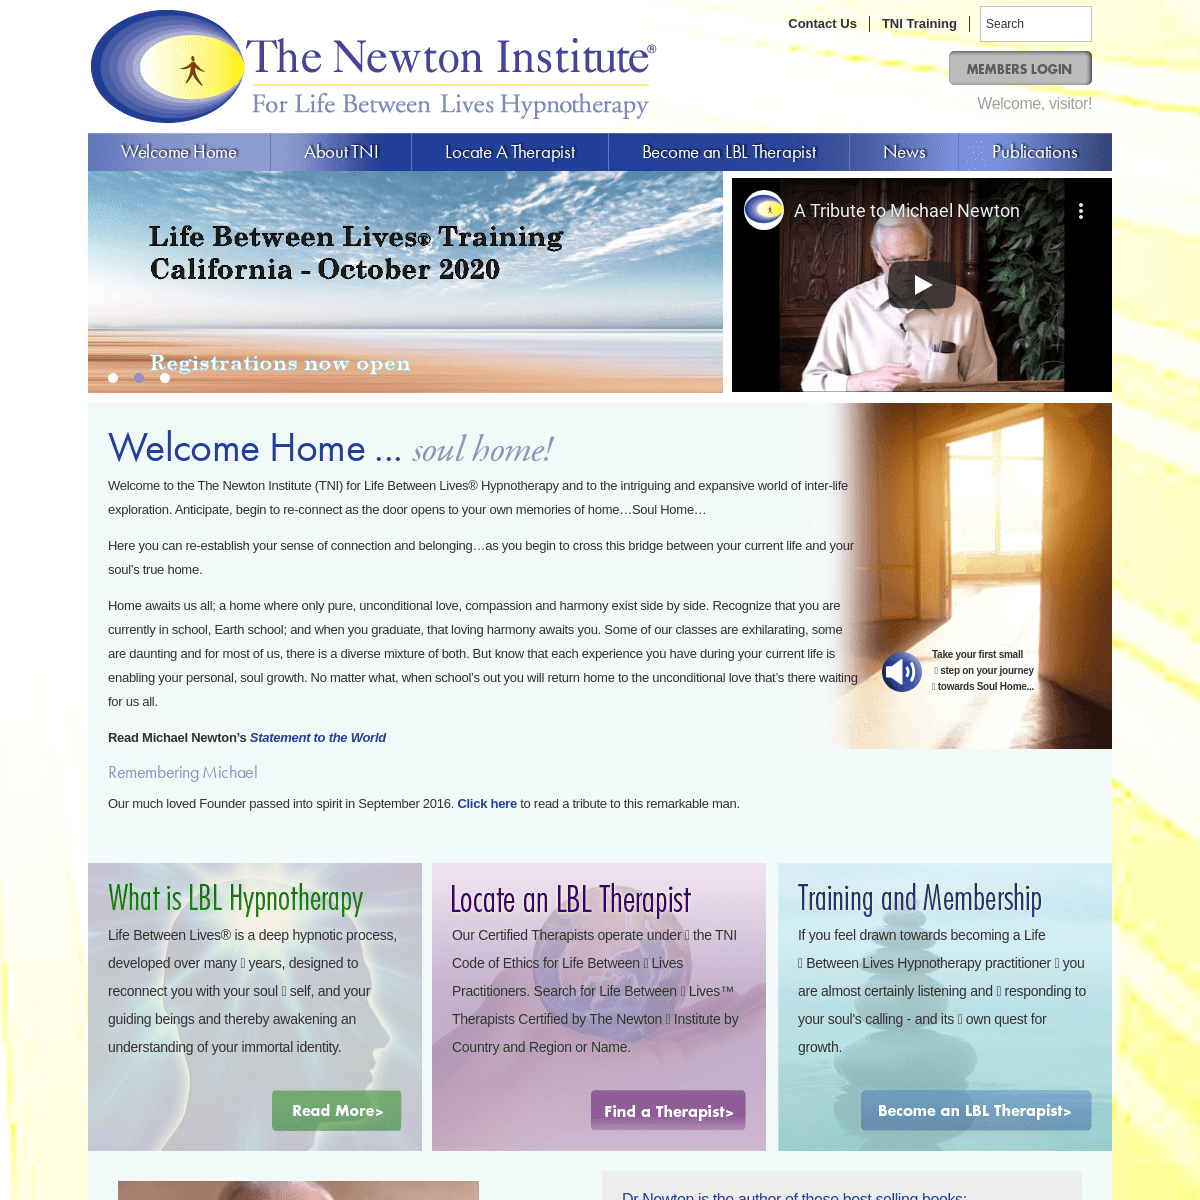 The Newton Institute for Life Between Lives Hypnotherapy